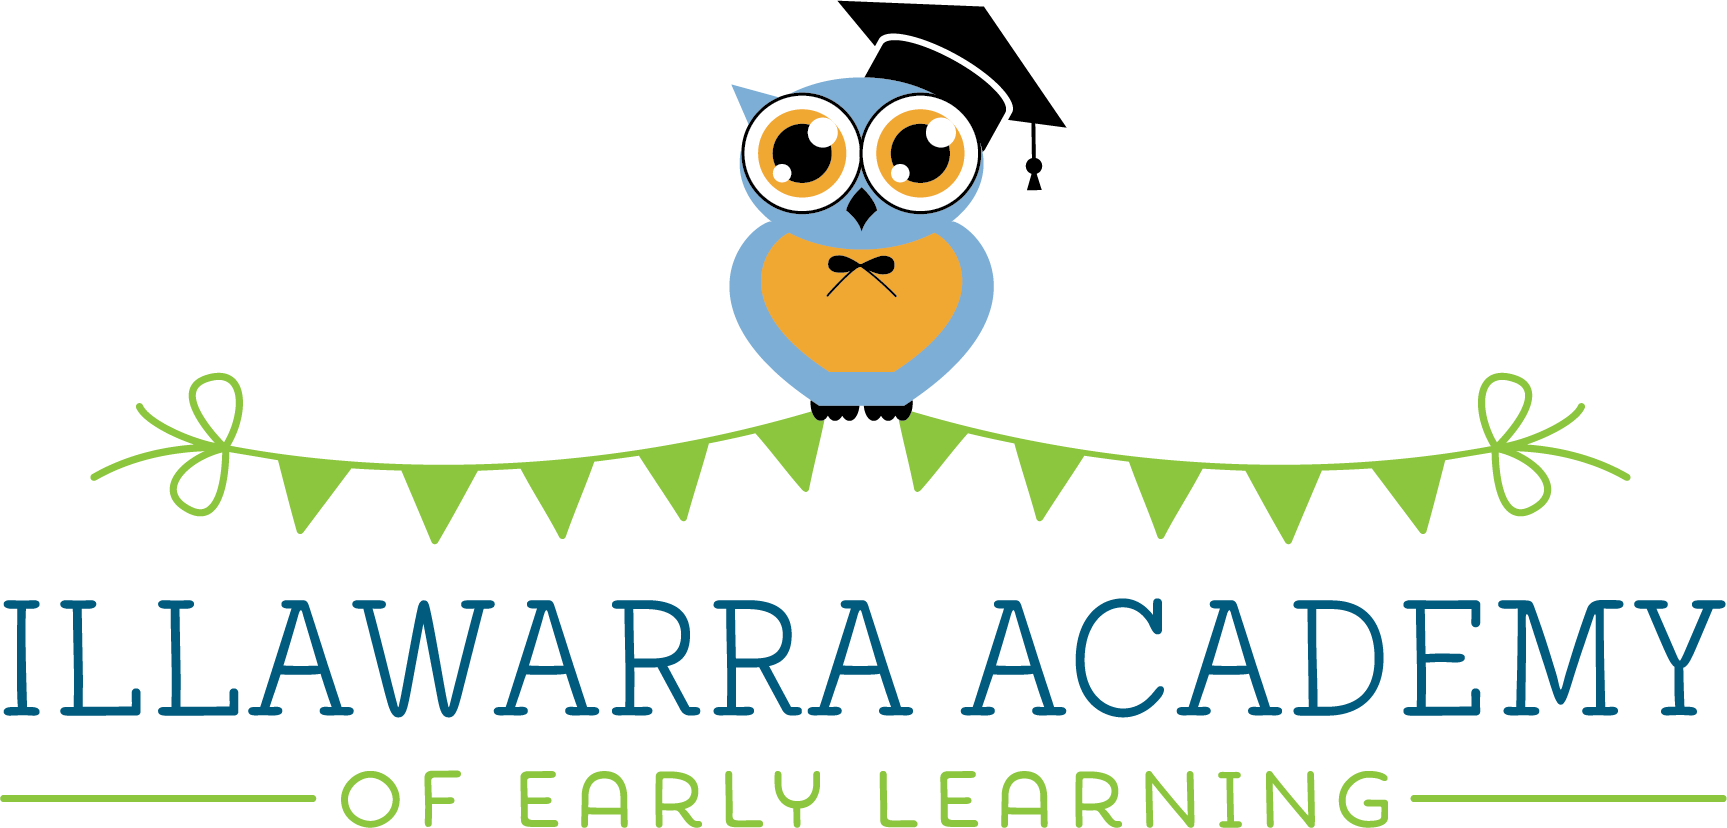 Illawarra Academy of Learning